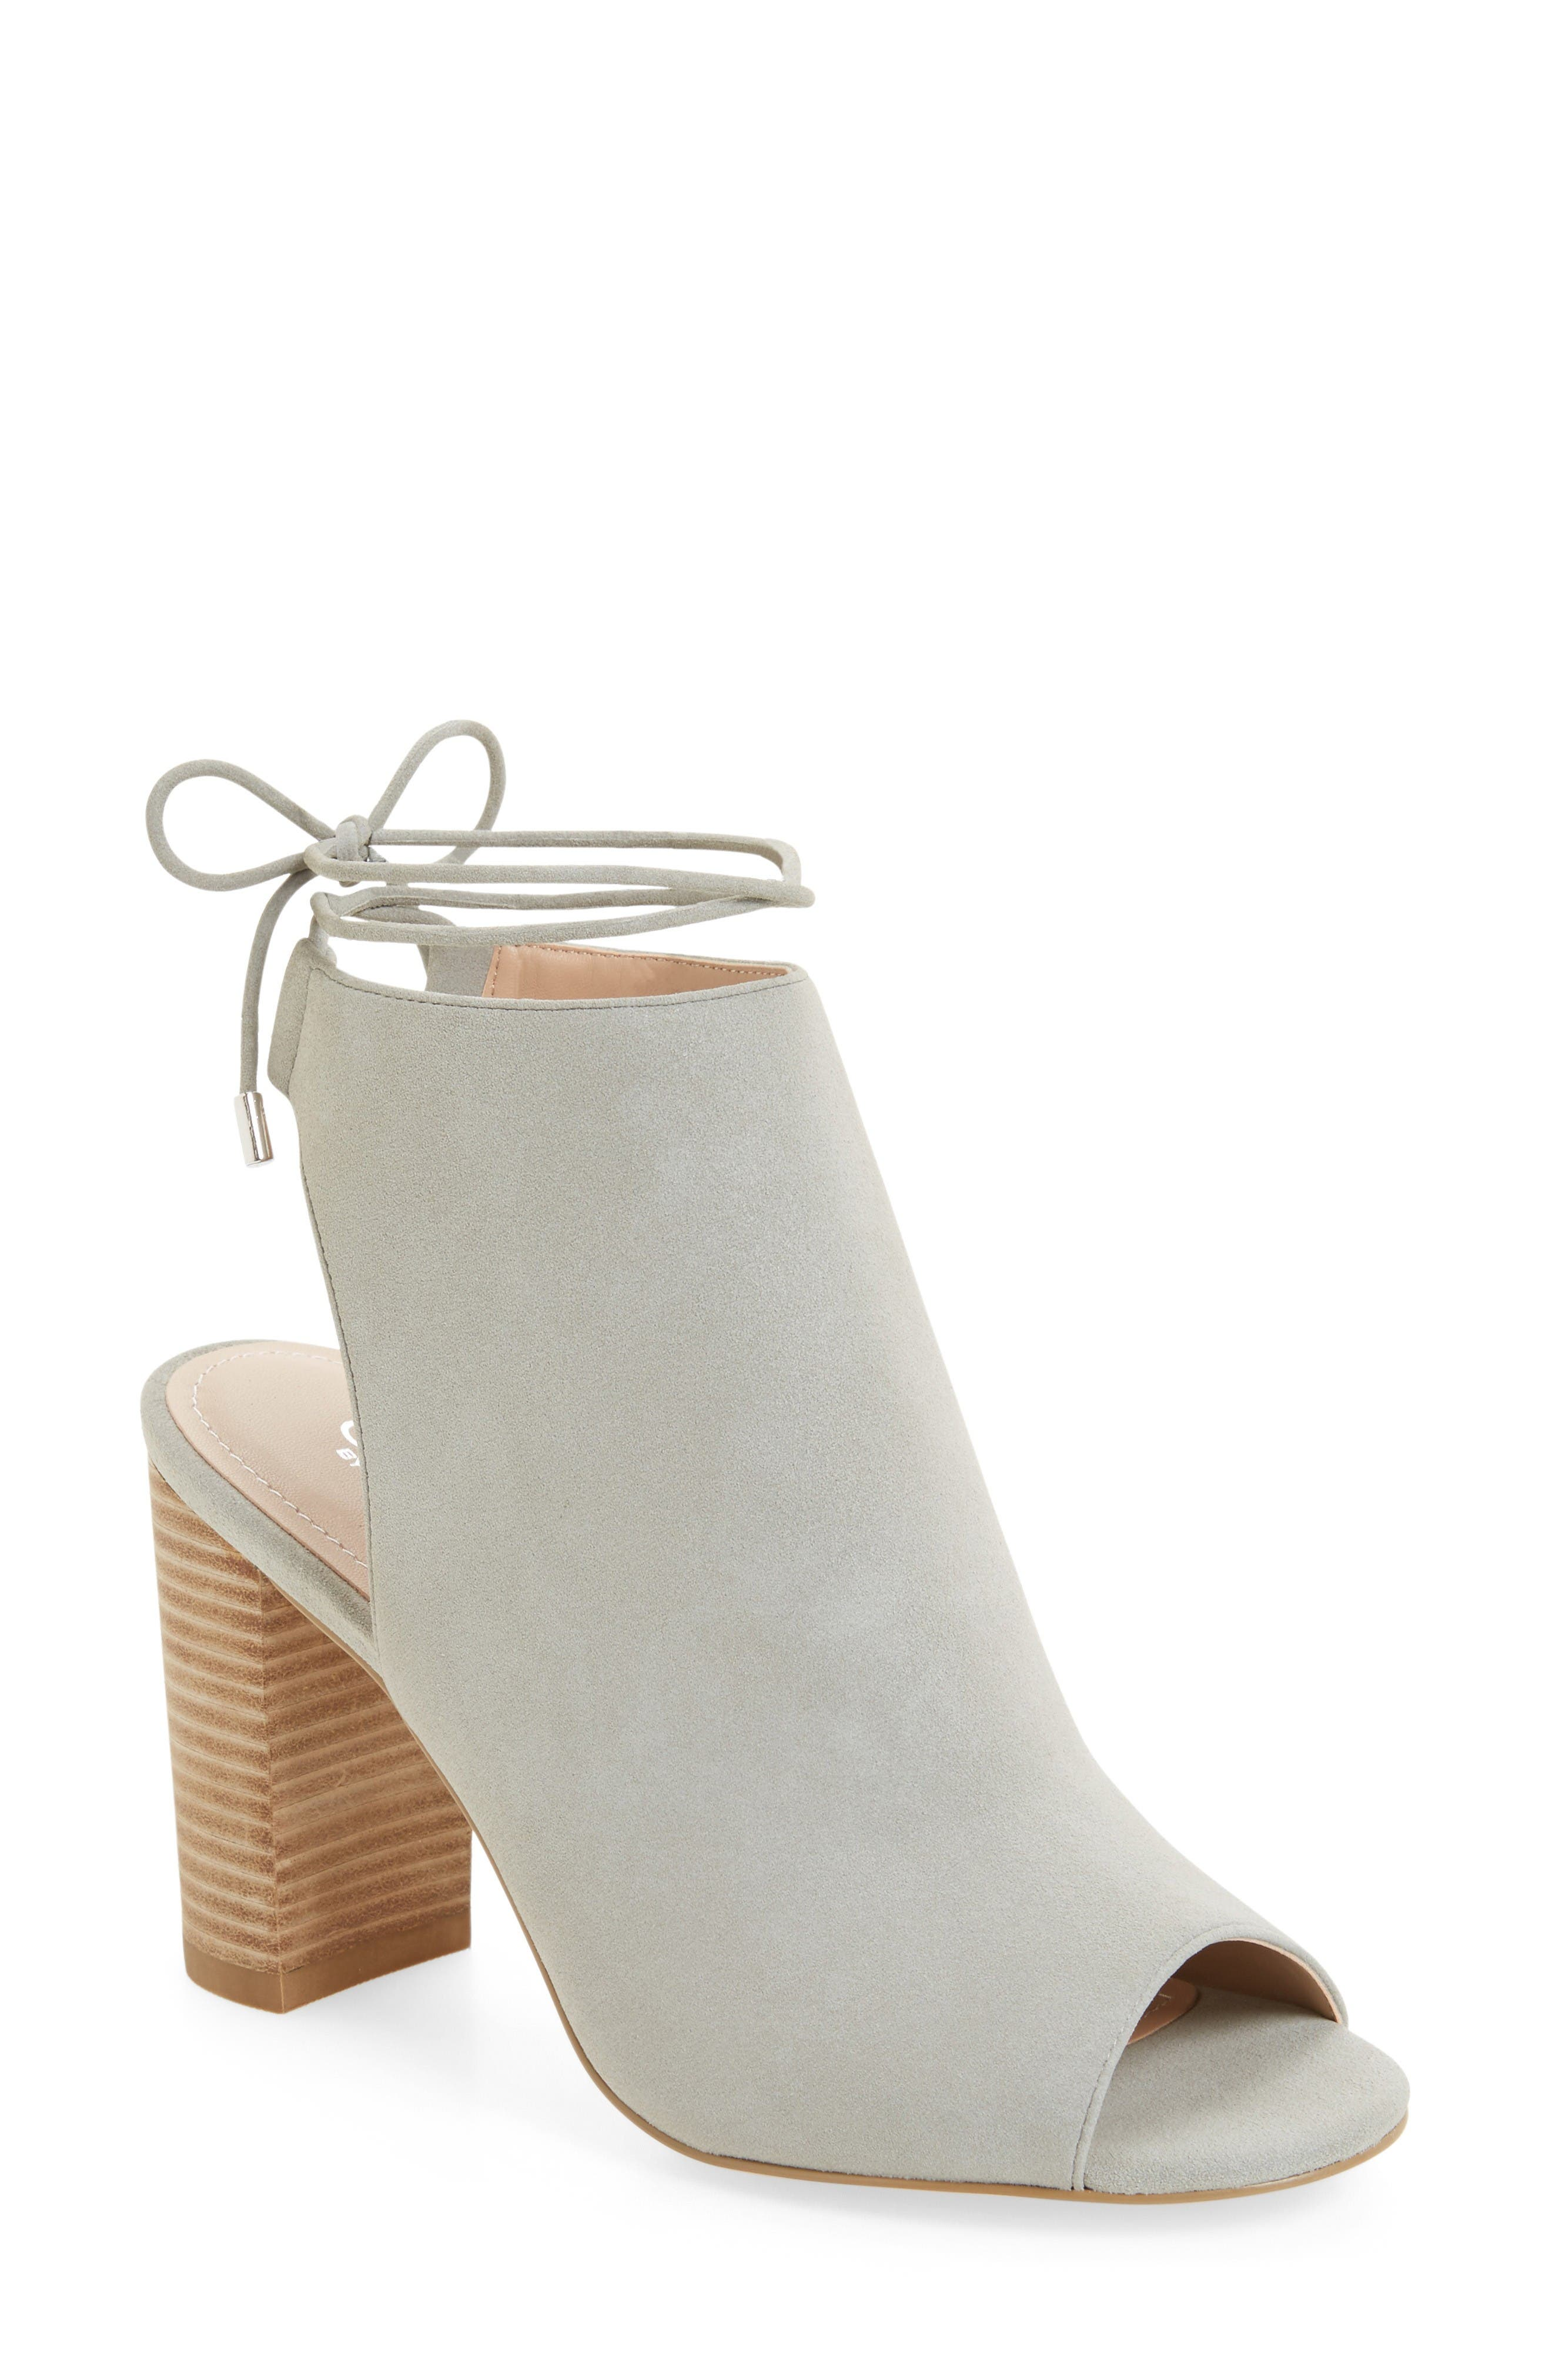 Alternate Image 1 Selected - Charles by Charles David Elista Ankle Wrap Sandal (Women)